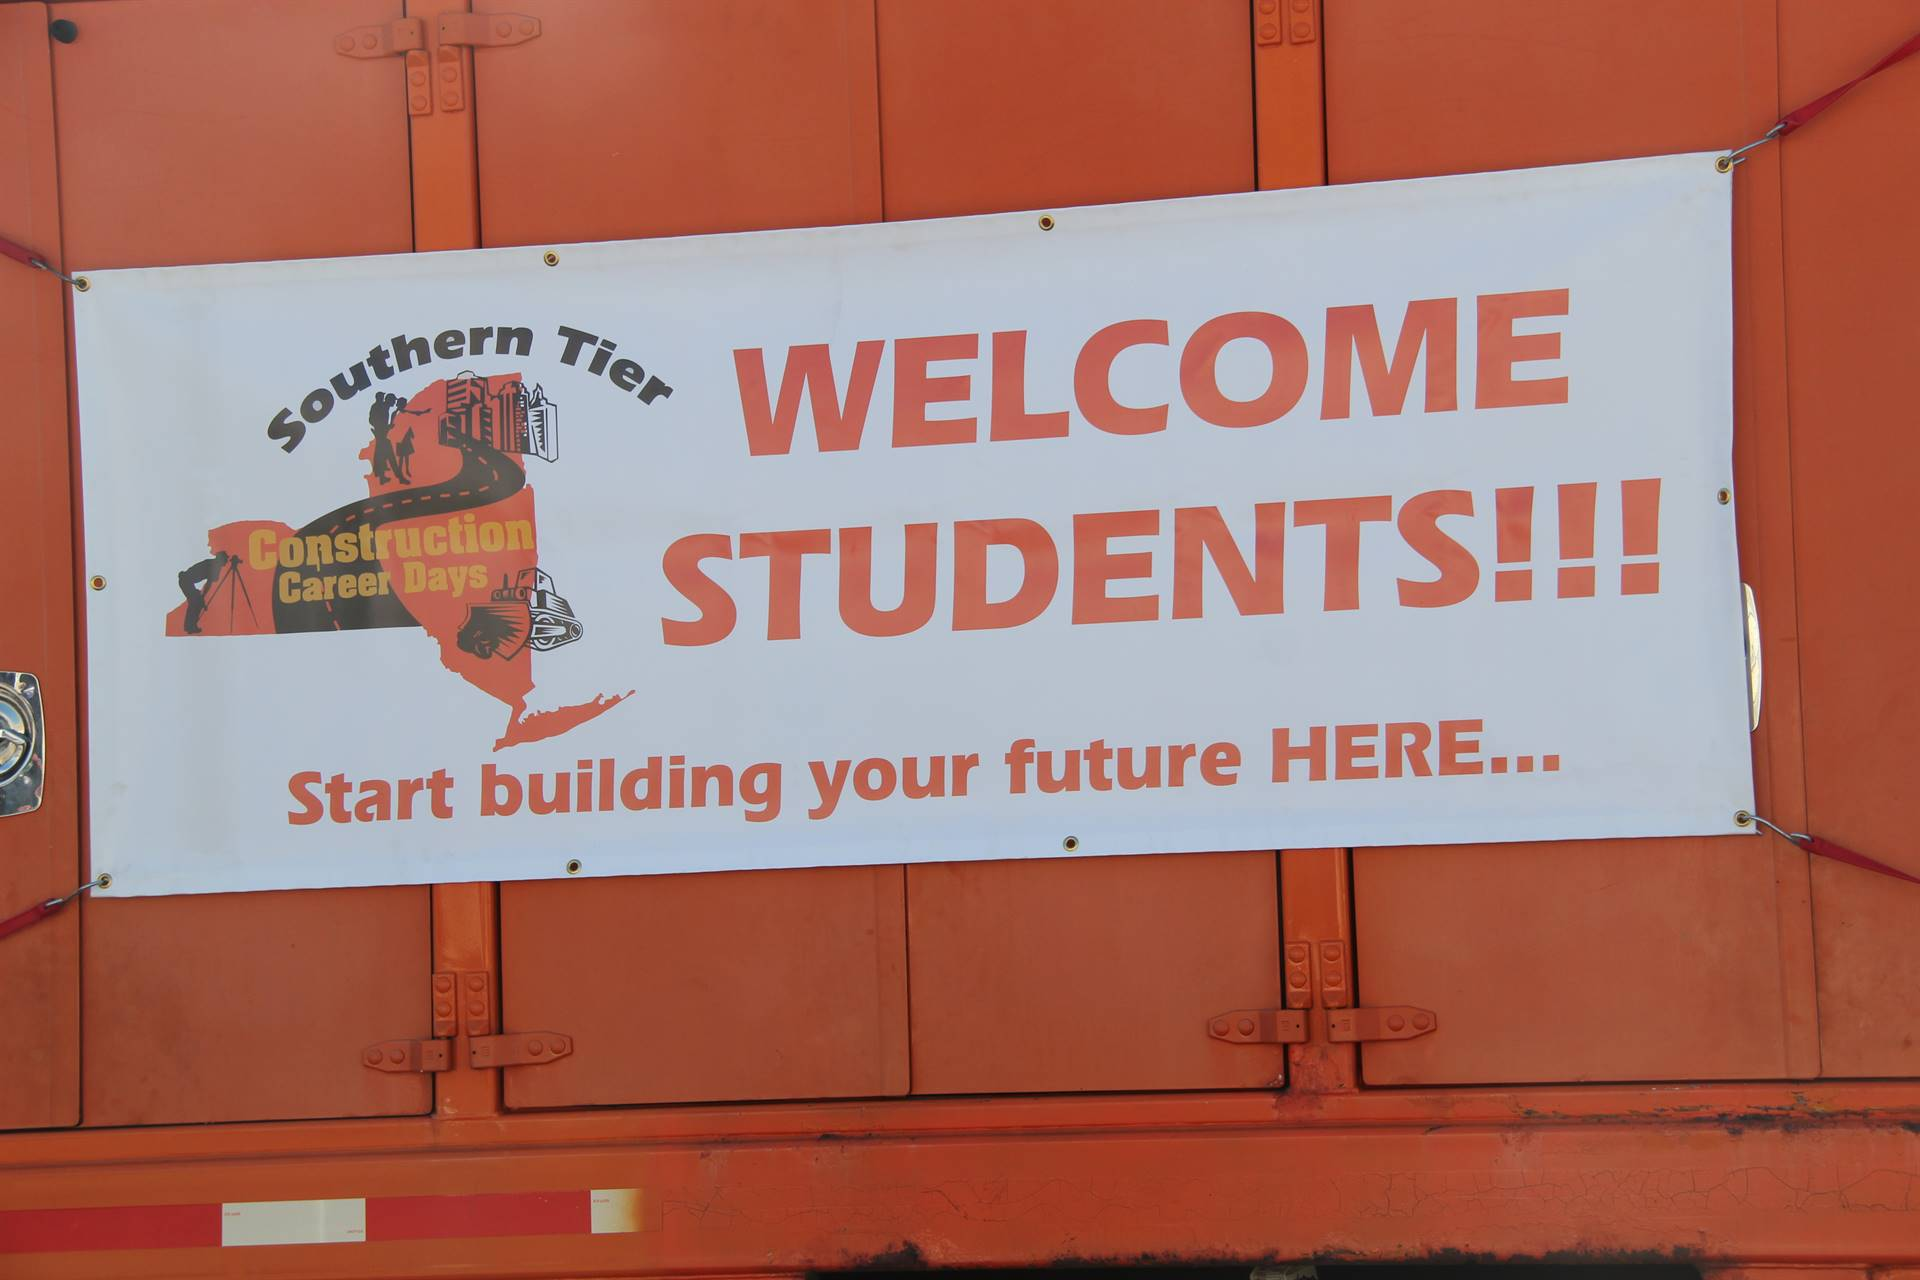 sign that reads southern tier construction career days welcome students start building your futures